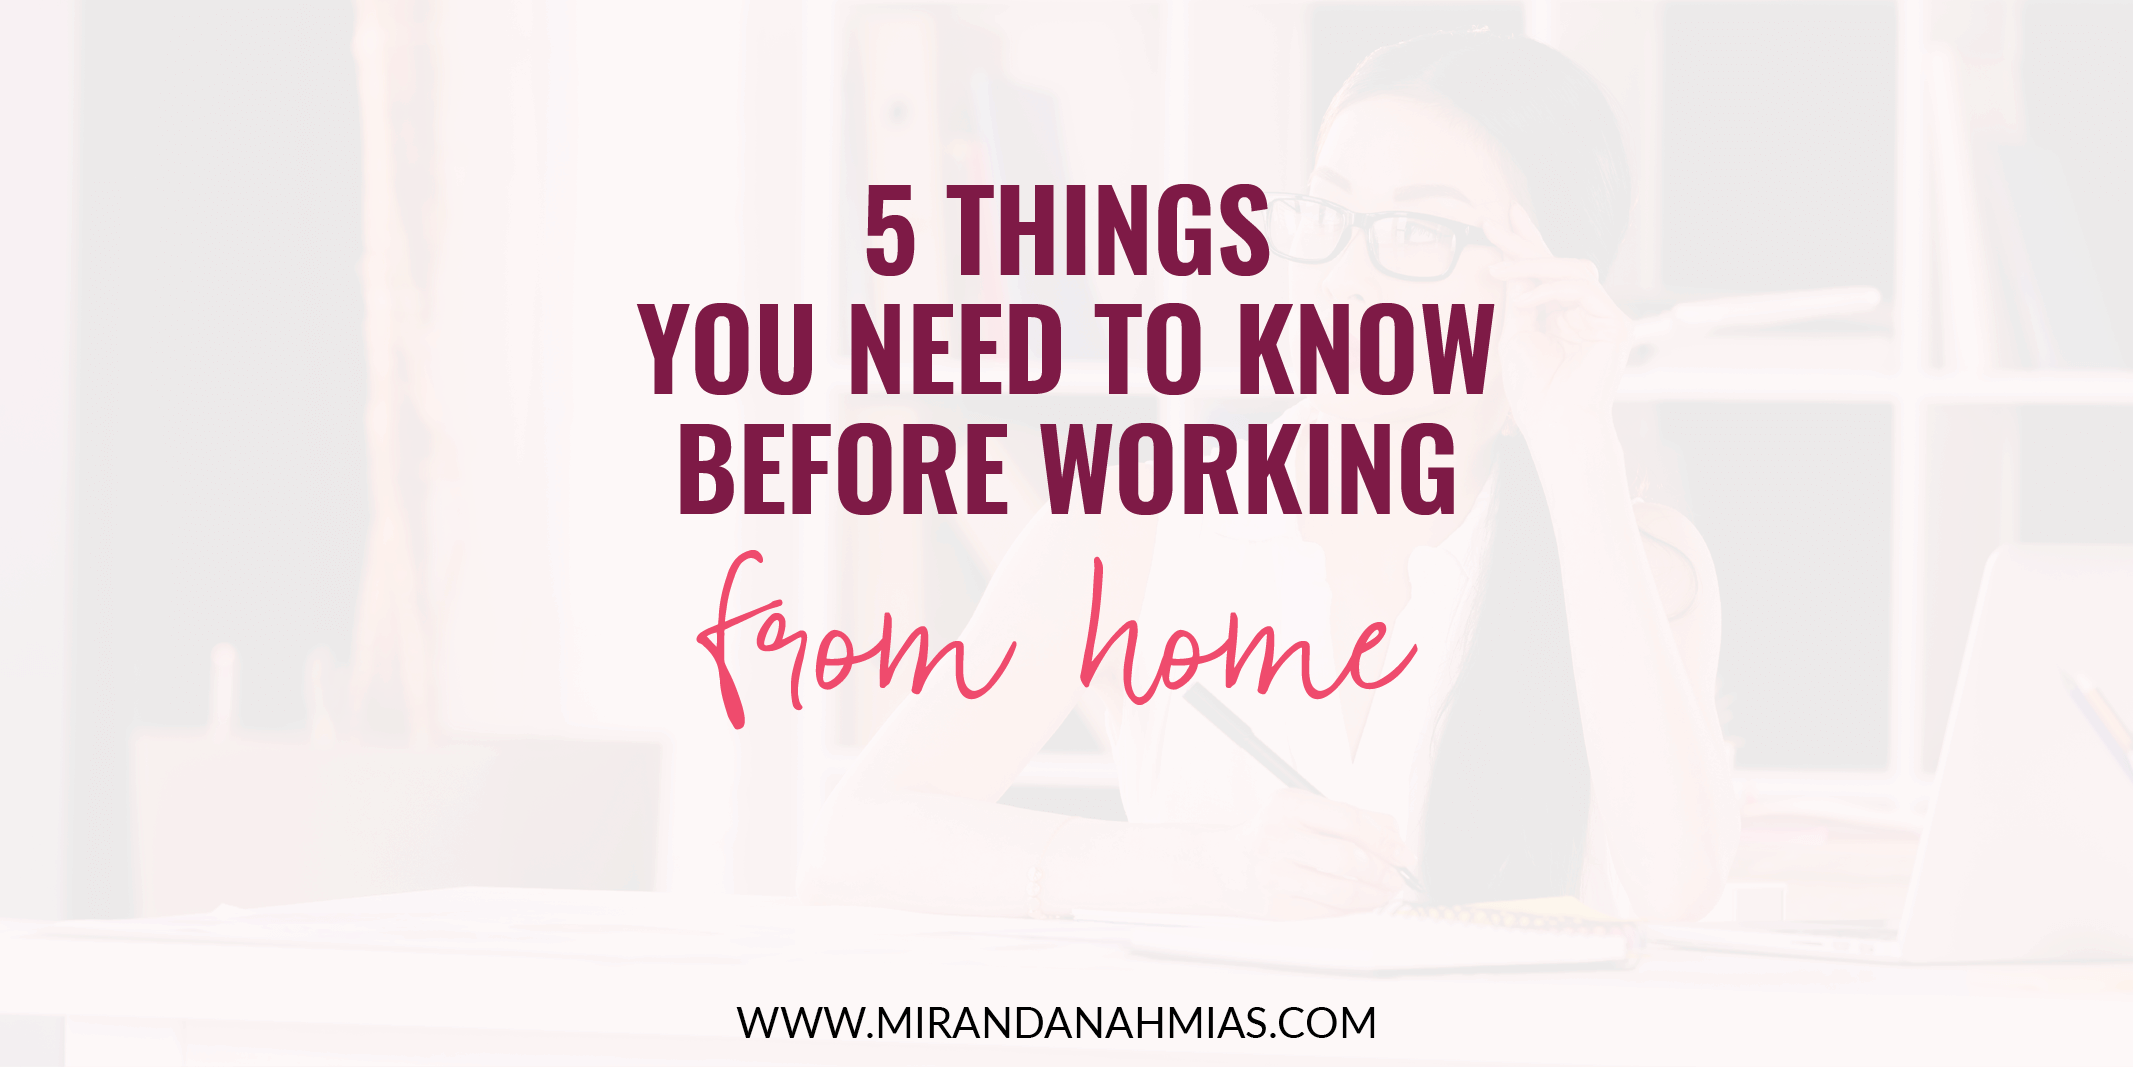 5 Things You Need To Know Before Working From Home